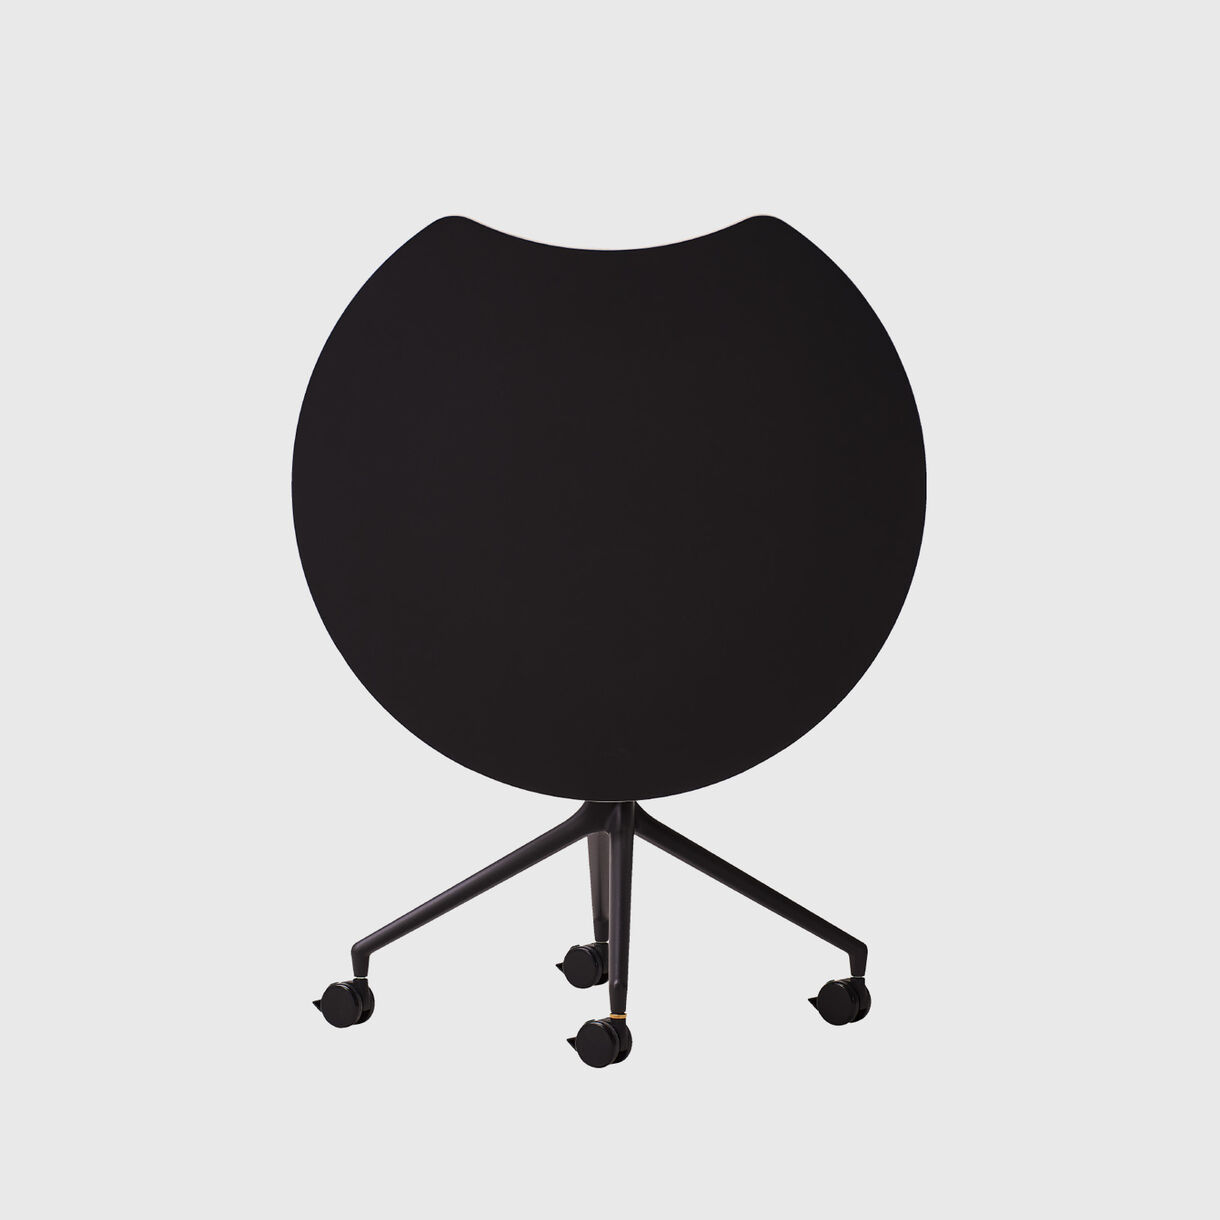 AS 400 Table, Round Concave